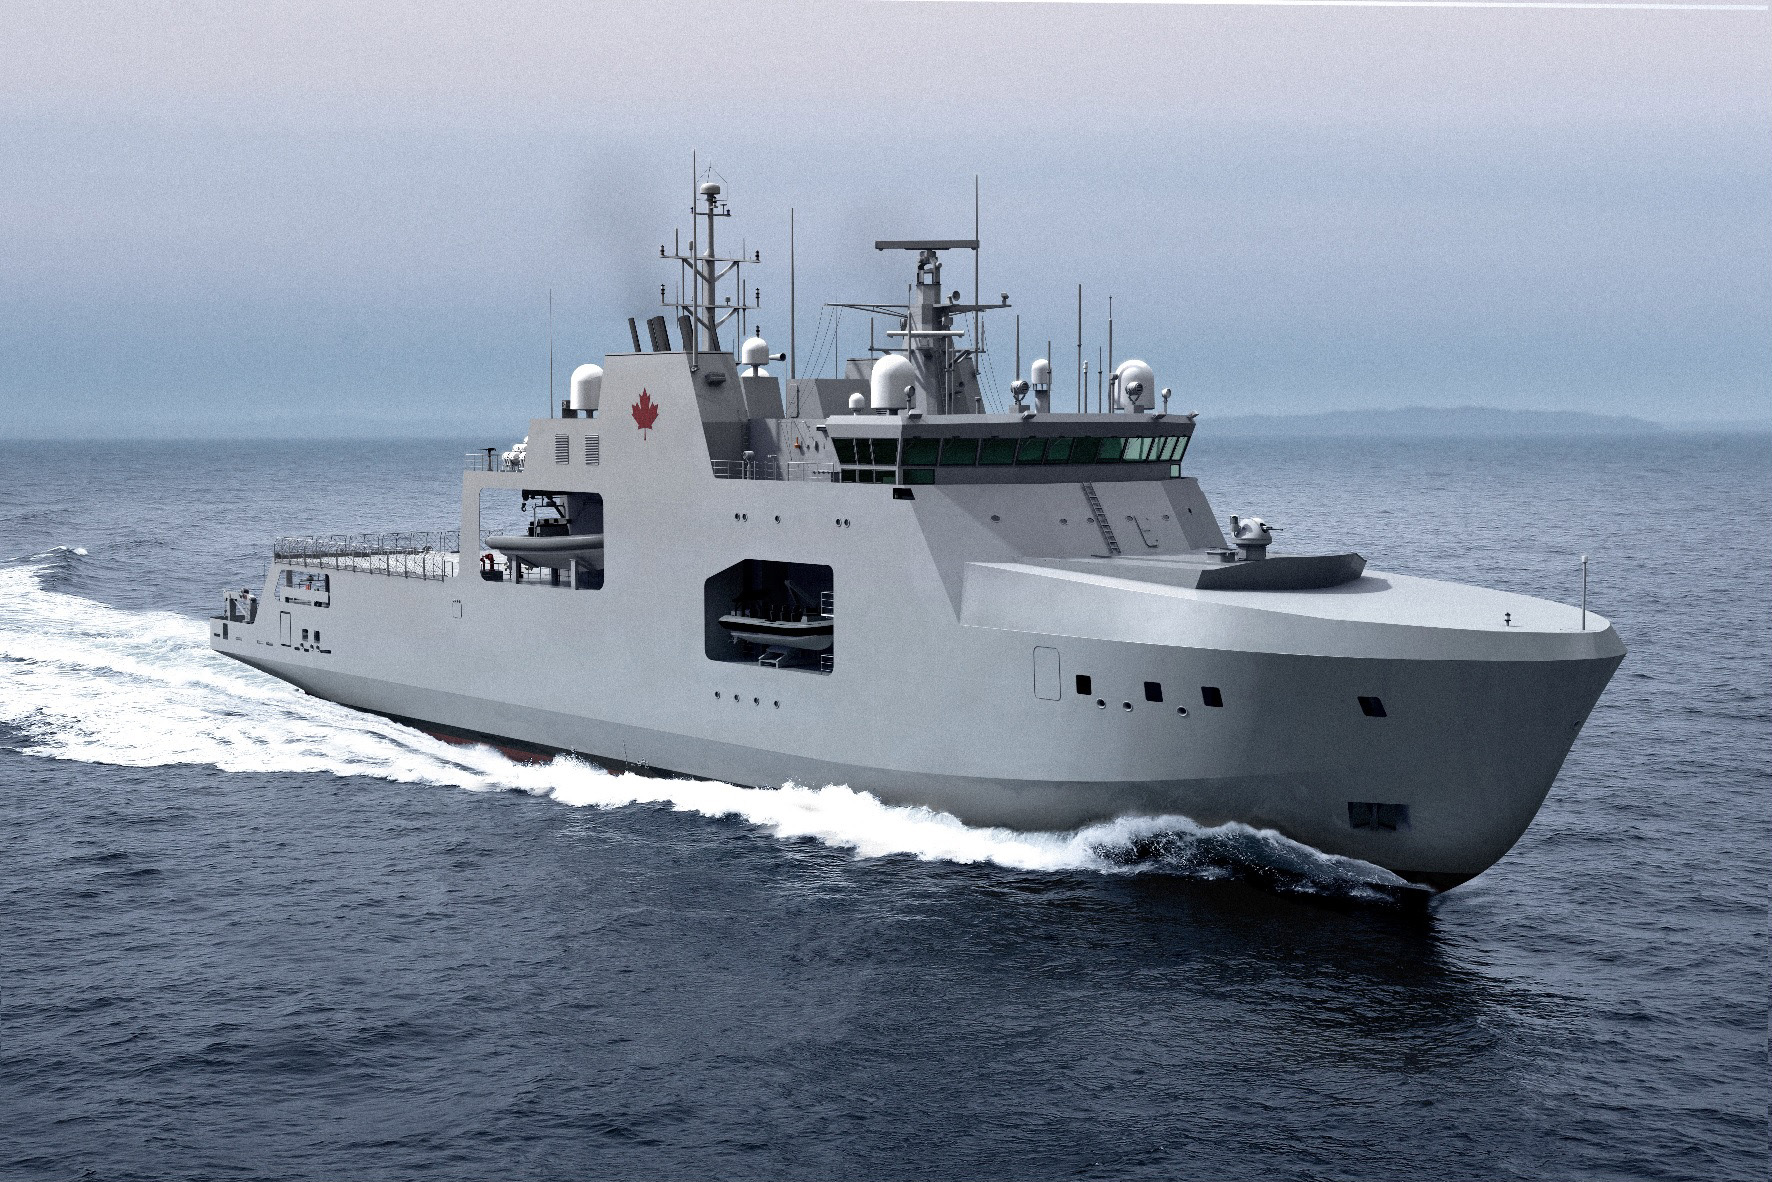 Artist's impression of the Harry DeWolf-Class Arctic/Offshore Patrol Vessel.